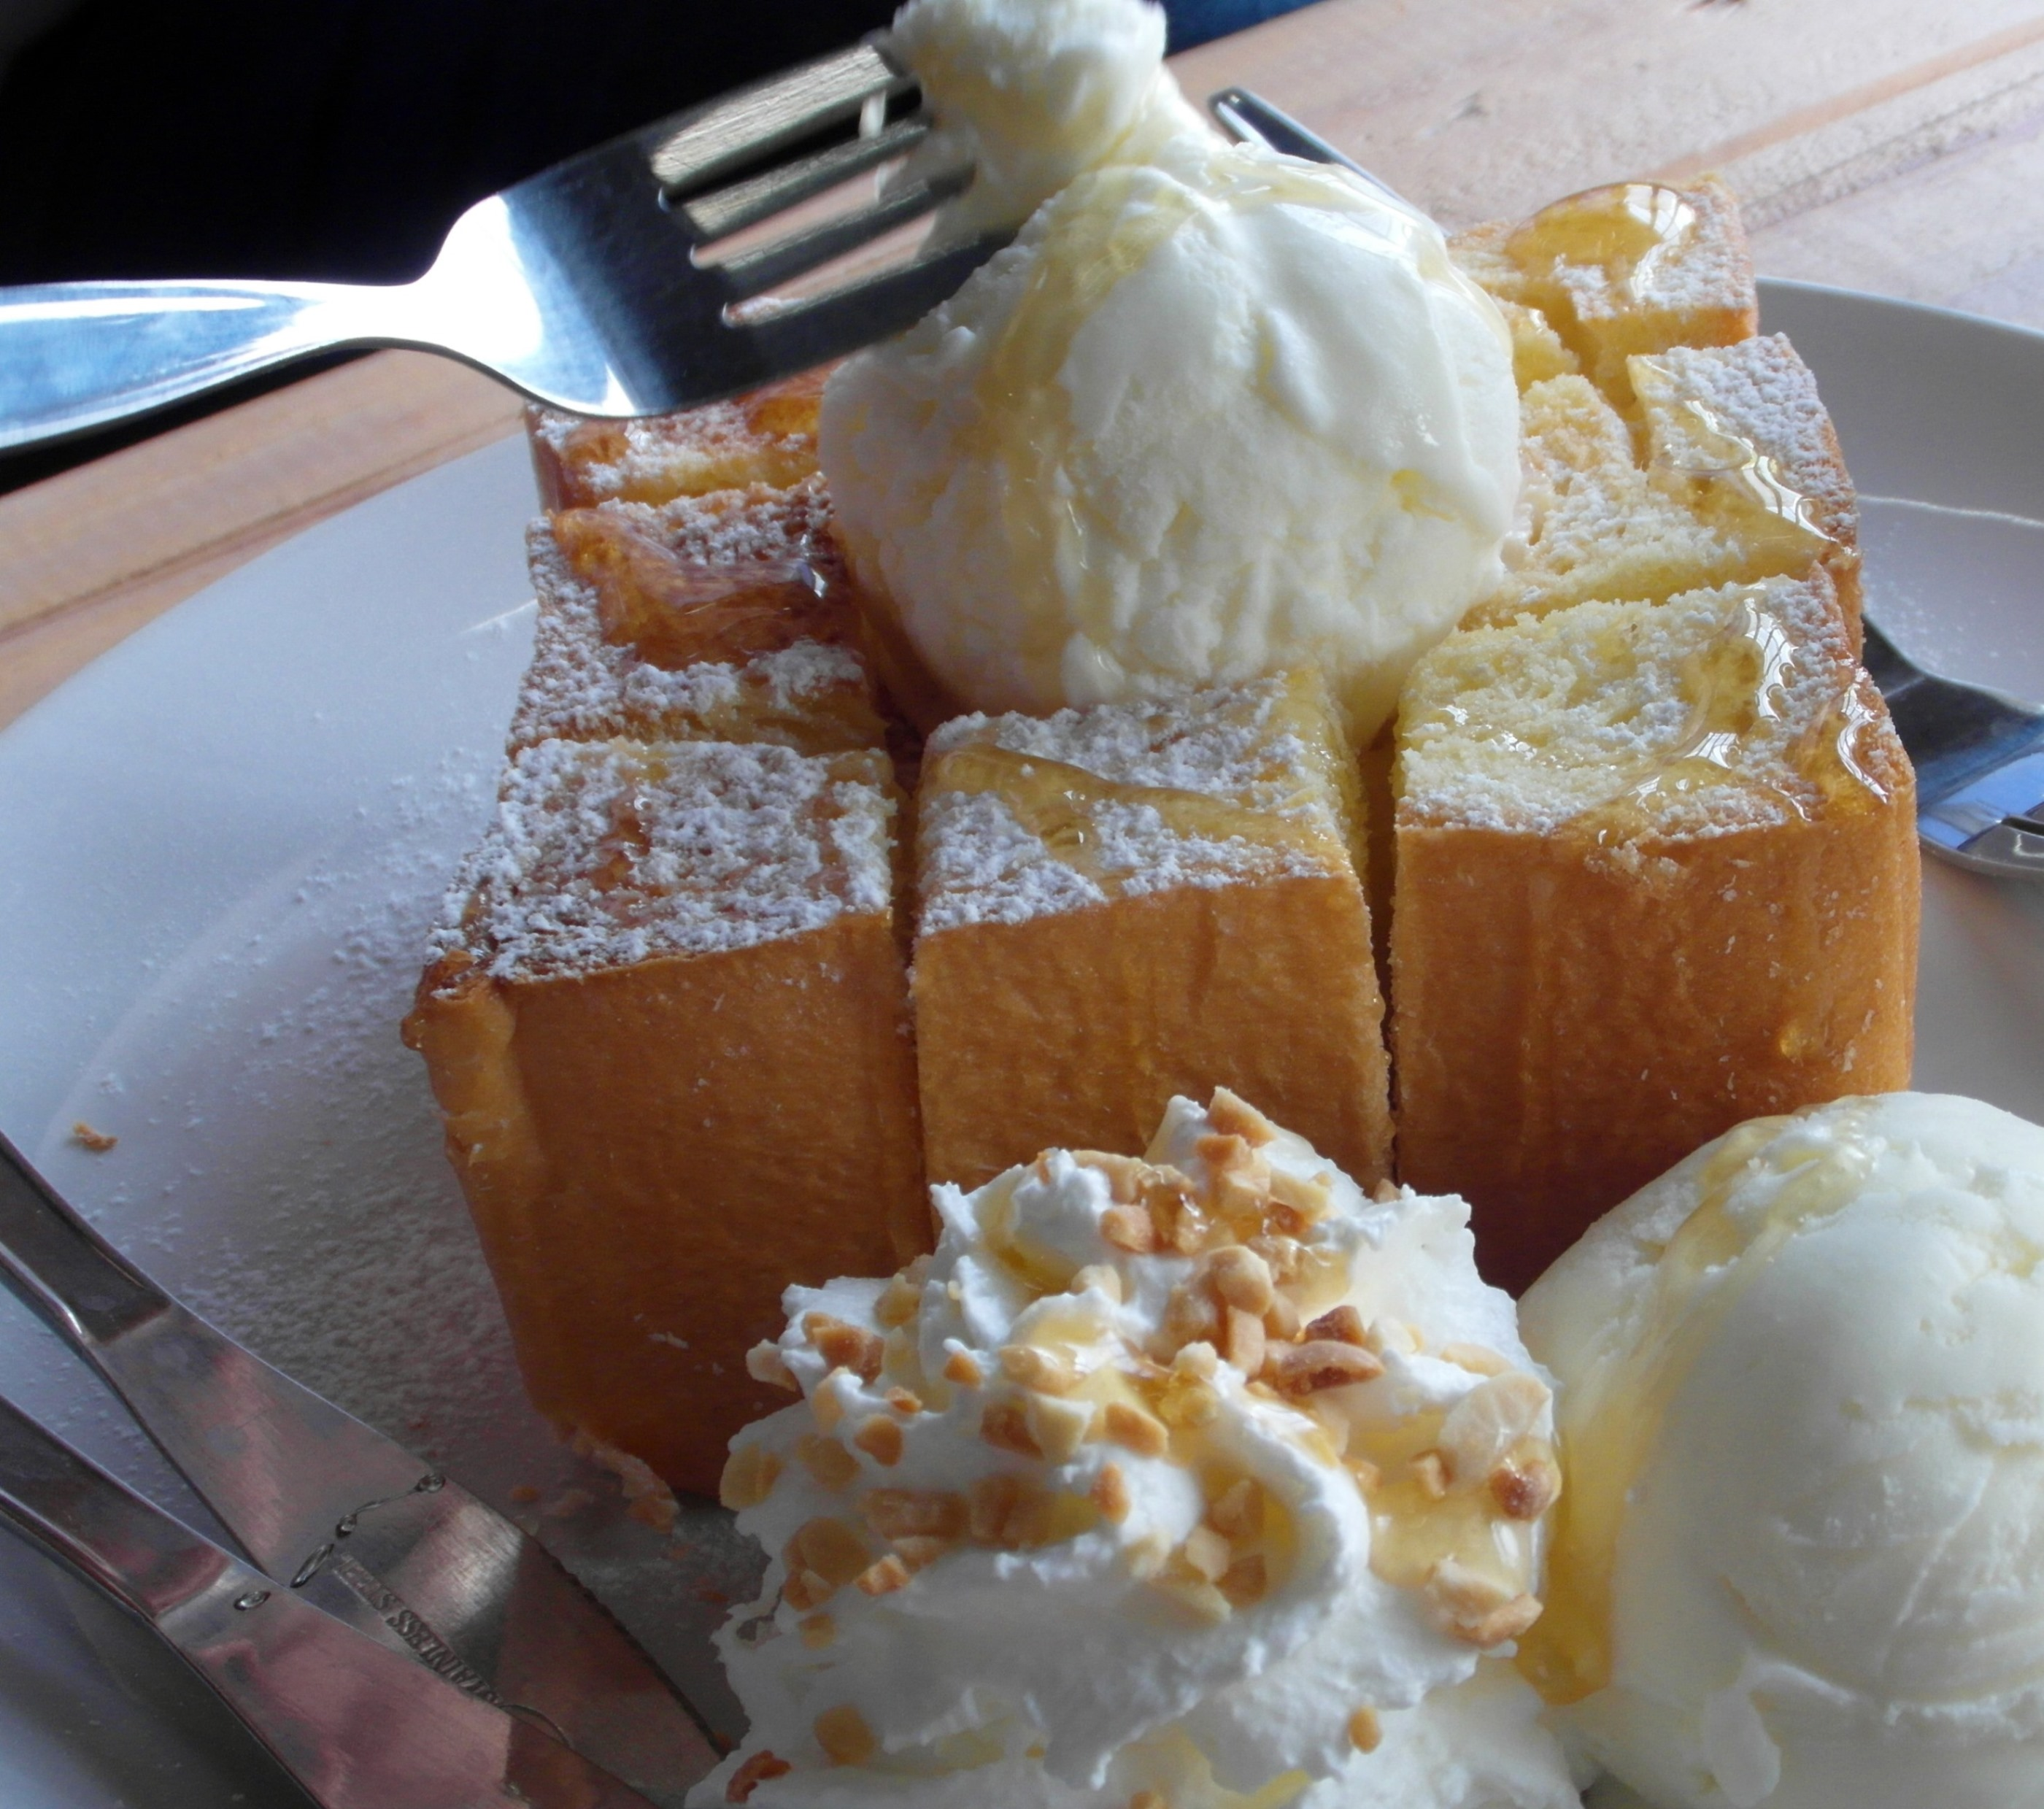 Honey Toast with Ice cream, Ice, Honey, Icecream, Sweet, HQ Photo